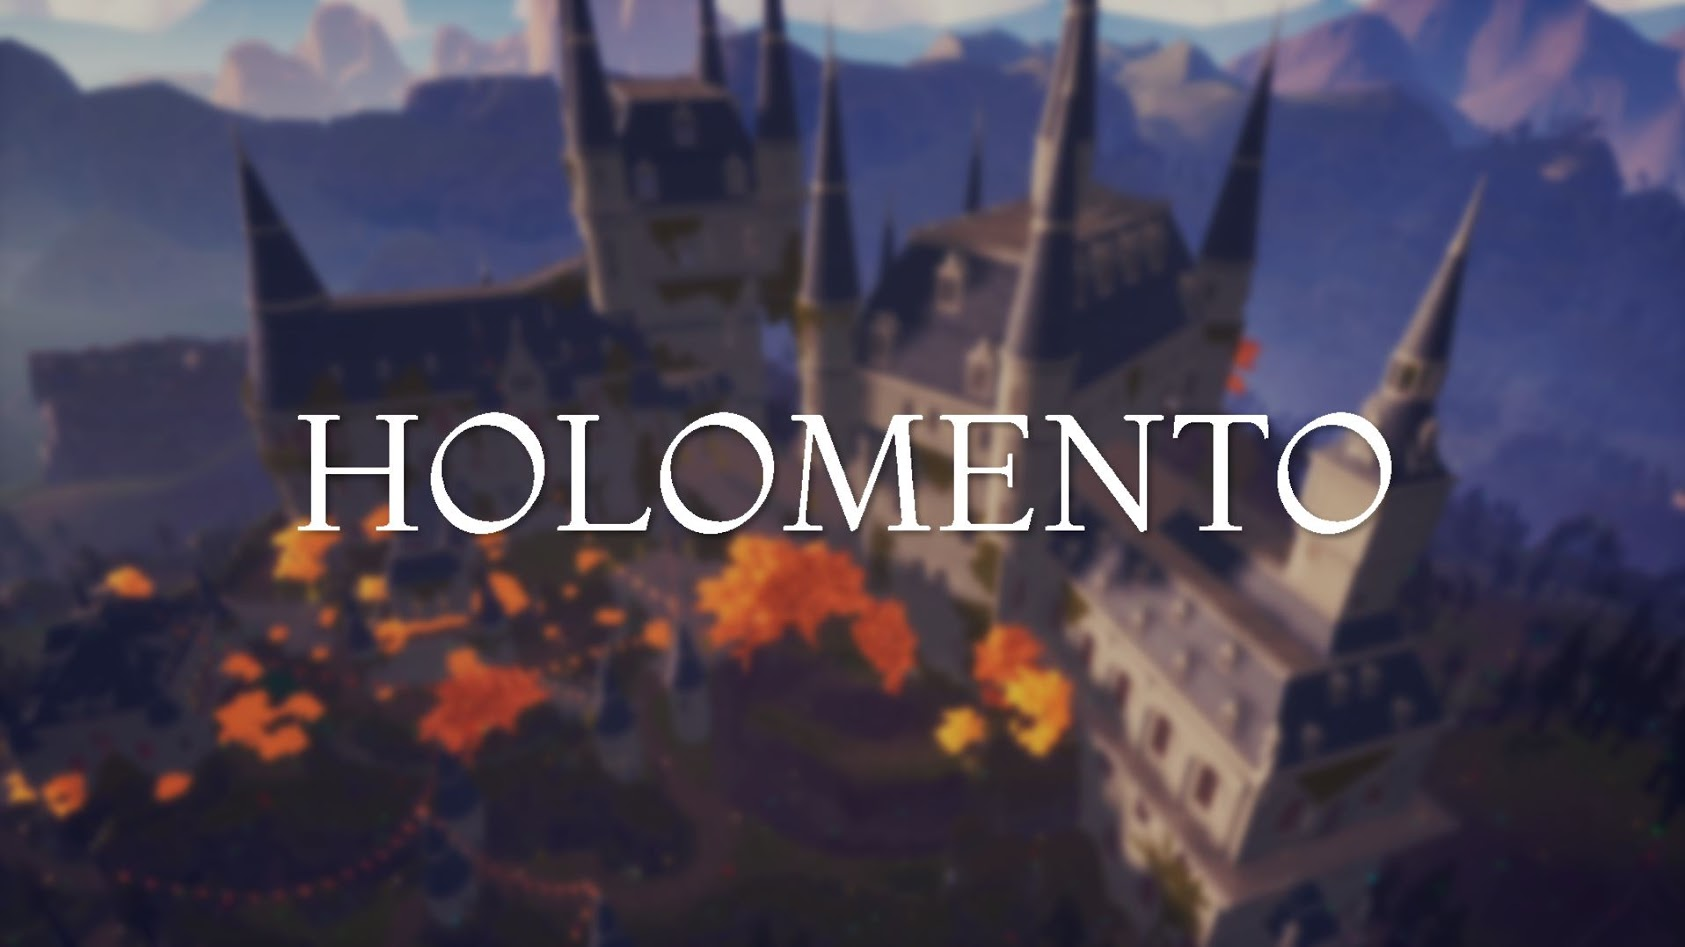 Holomento Is An Amazing Game That Needs Supporters